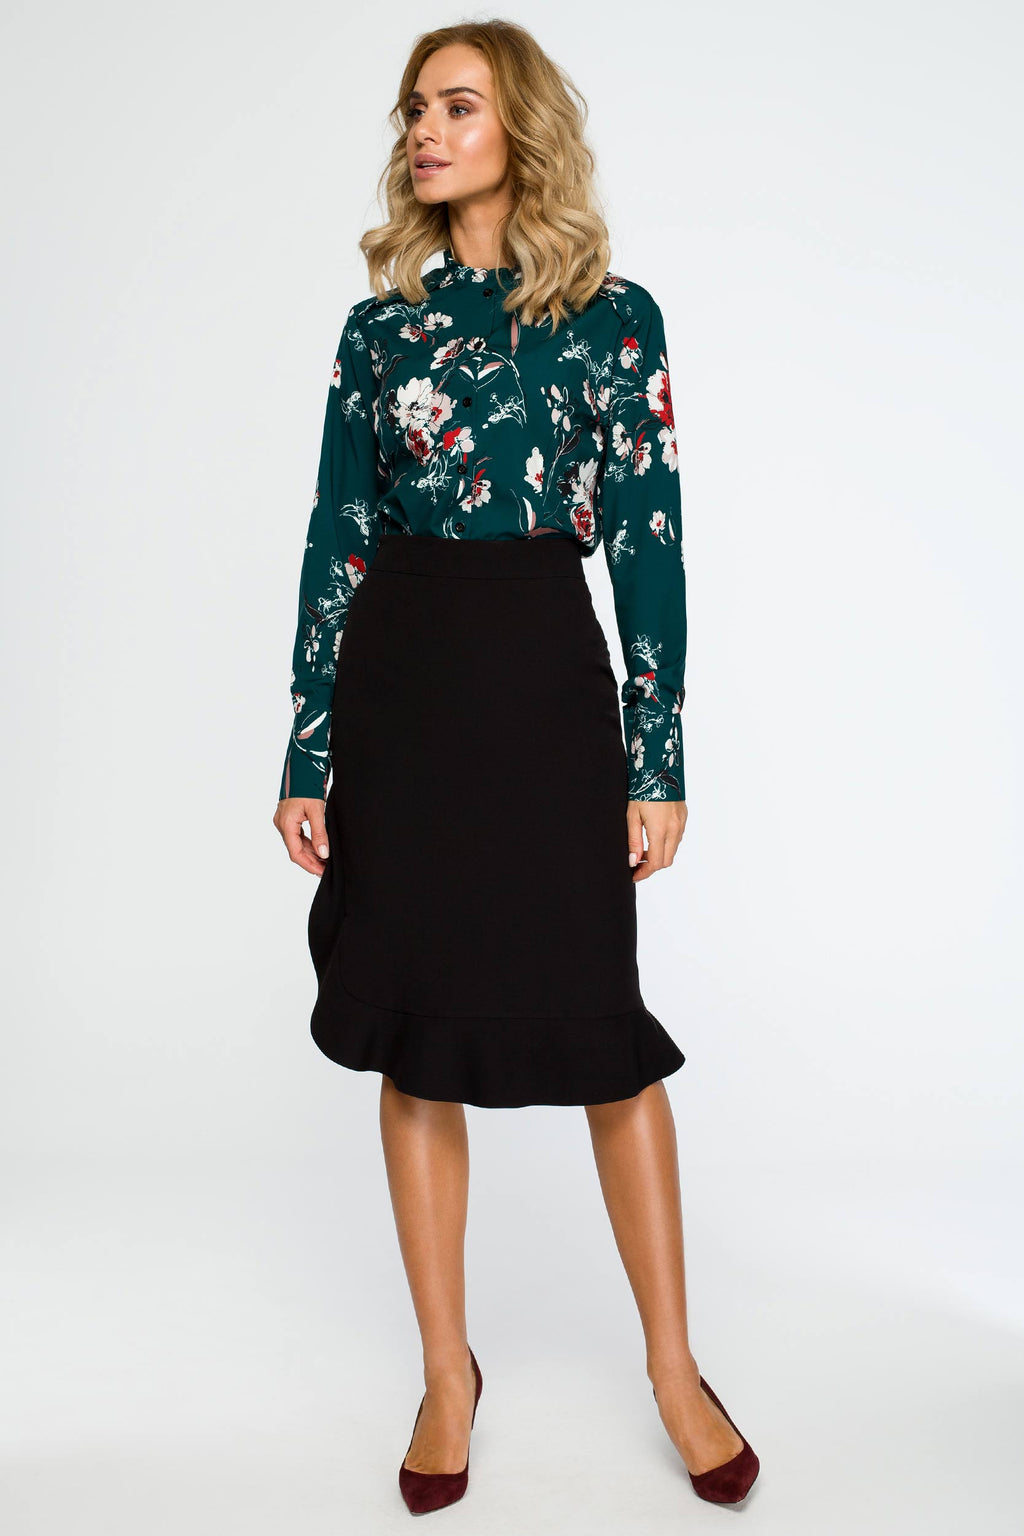 Green Floral Ruffled Neck Shirt - So Chic Boutique